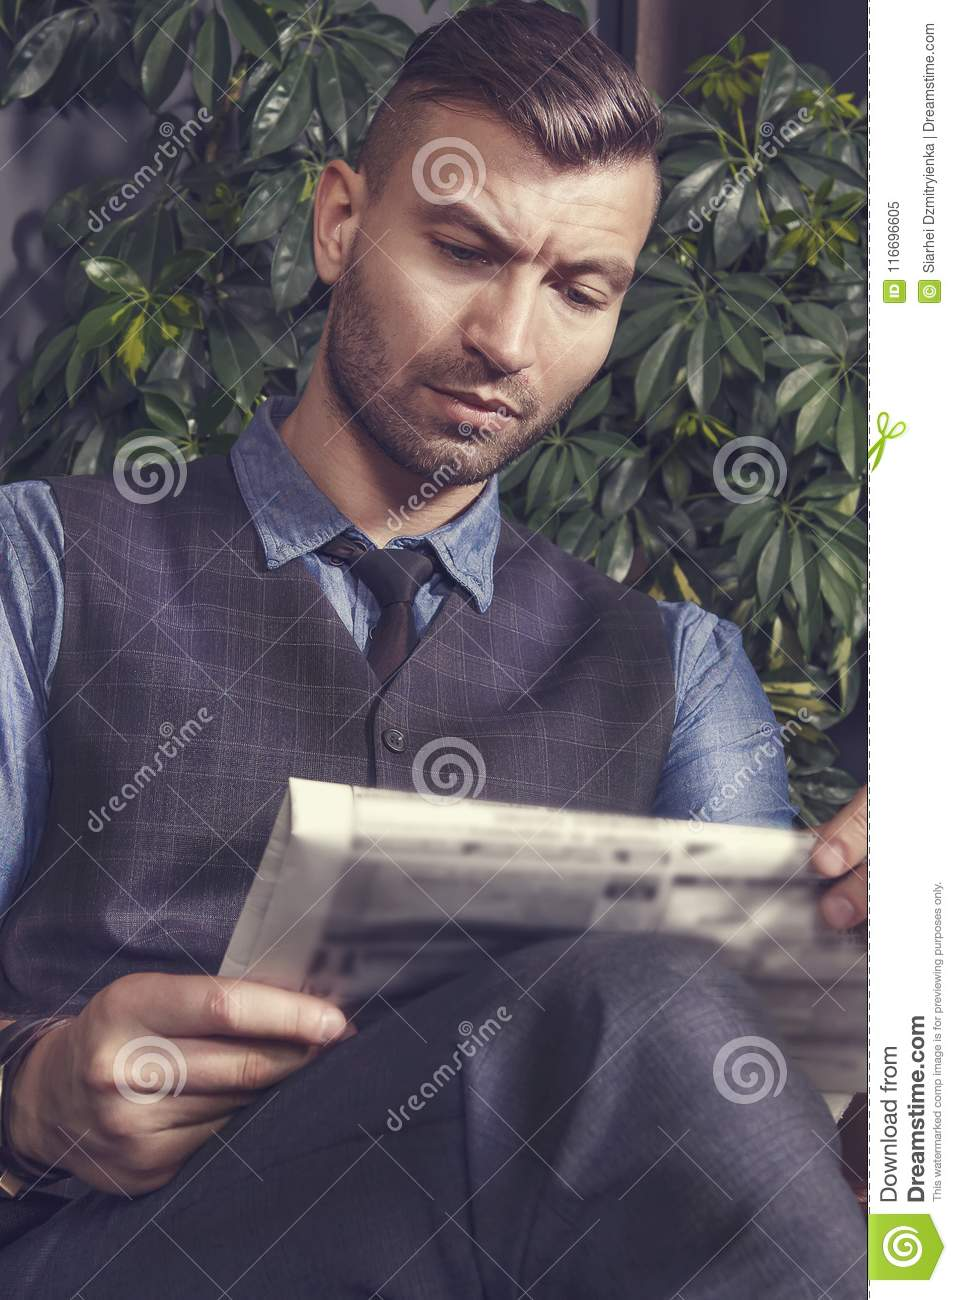 Stylish fashionable brutal handsome businessman sits in chair and reads news in newspaper. Portrait of man in suit